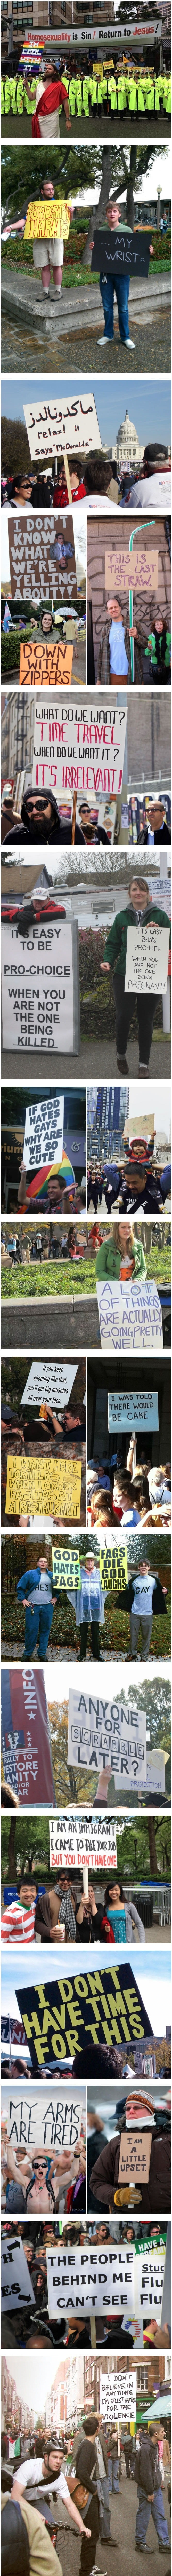 People who wonderfully trolled protesters